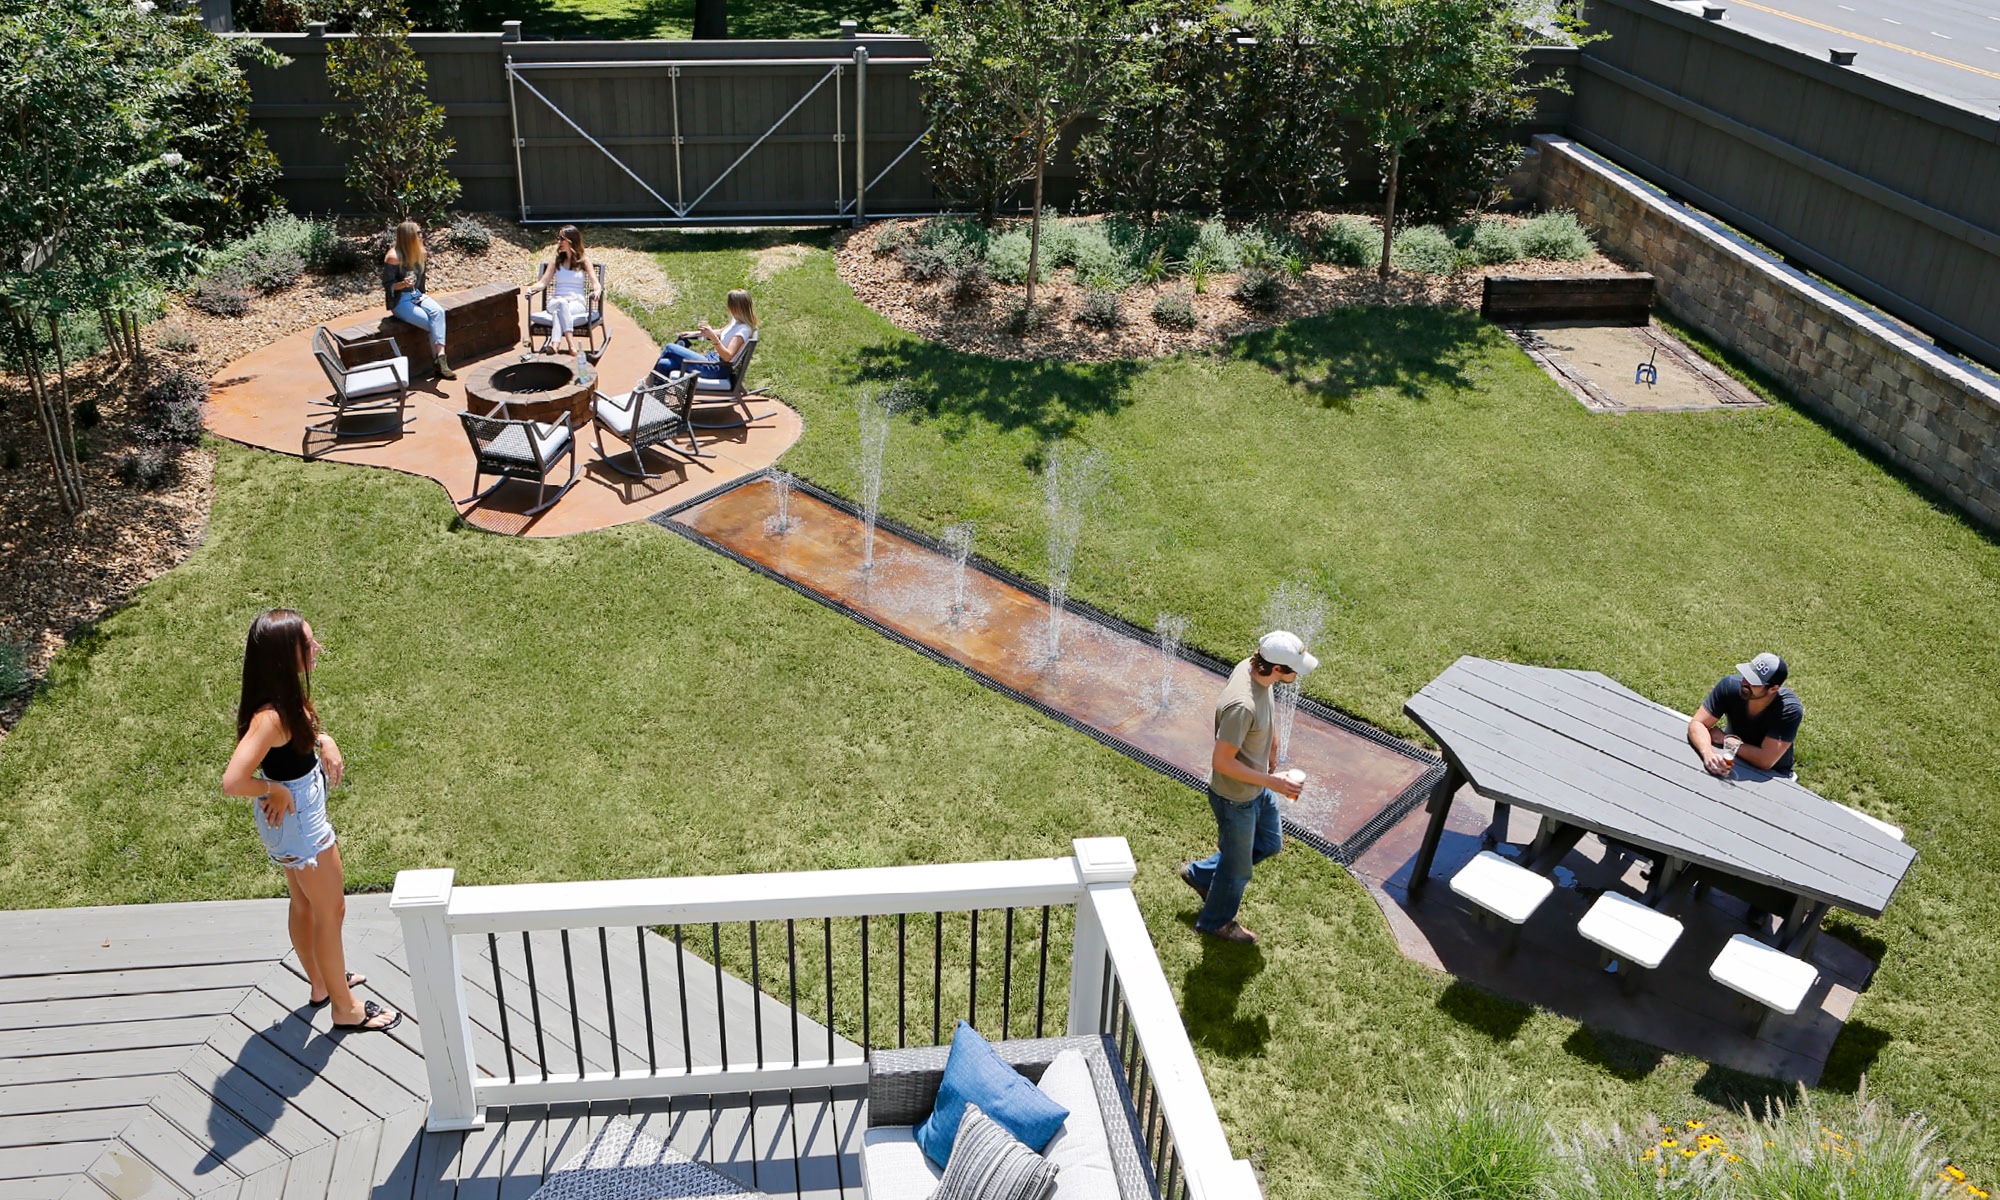 A beautiful backyard with a fire pit, water feature and picnic table that form the shape of a guitar